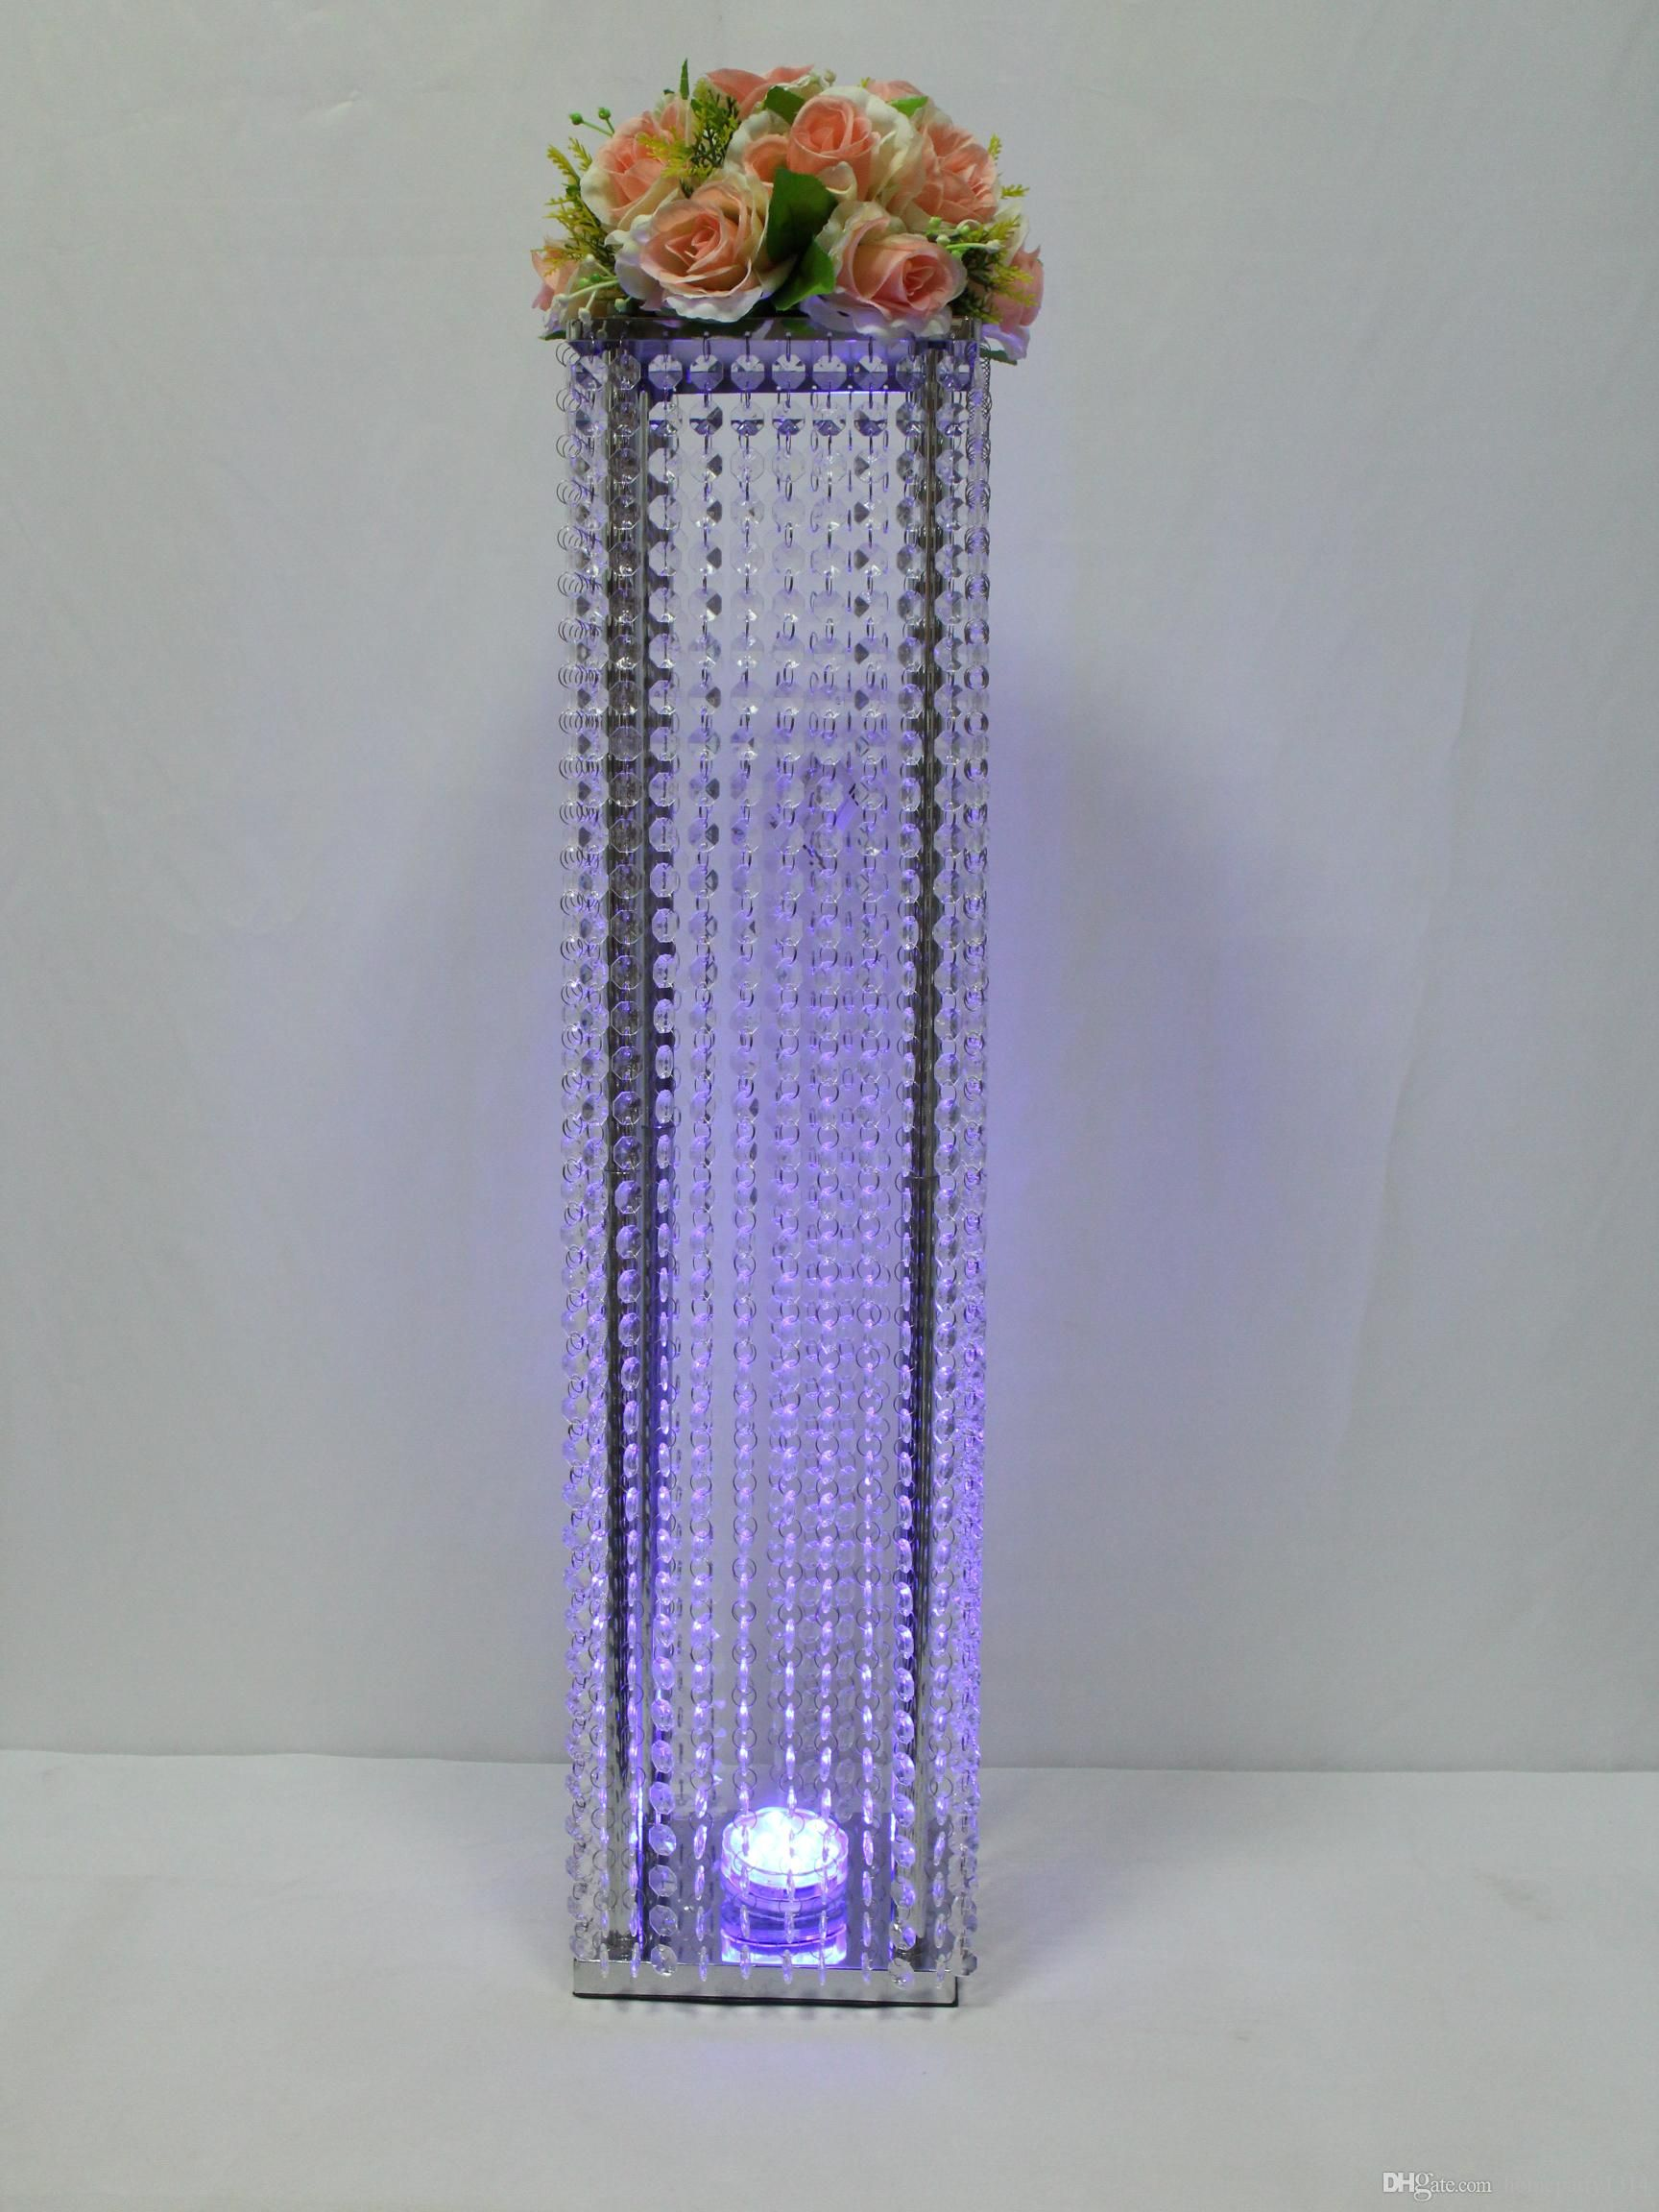 2018 Iron Metal Crystal Flower Stand Vase Aisle Fl Decor Tall Wedding Centerpieces Cake Road Lead With Led Light